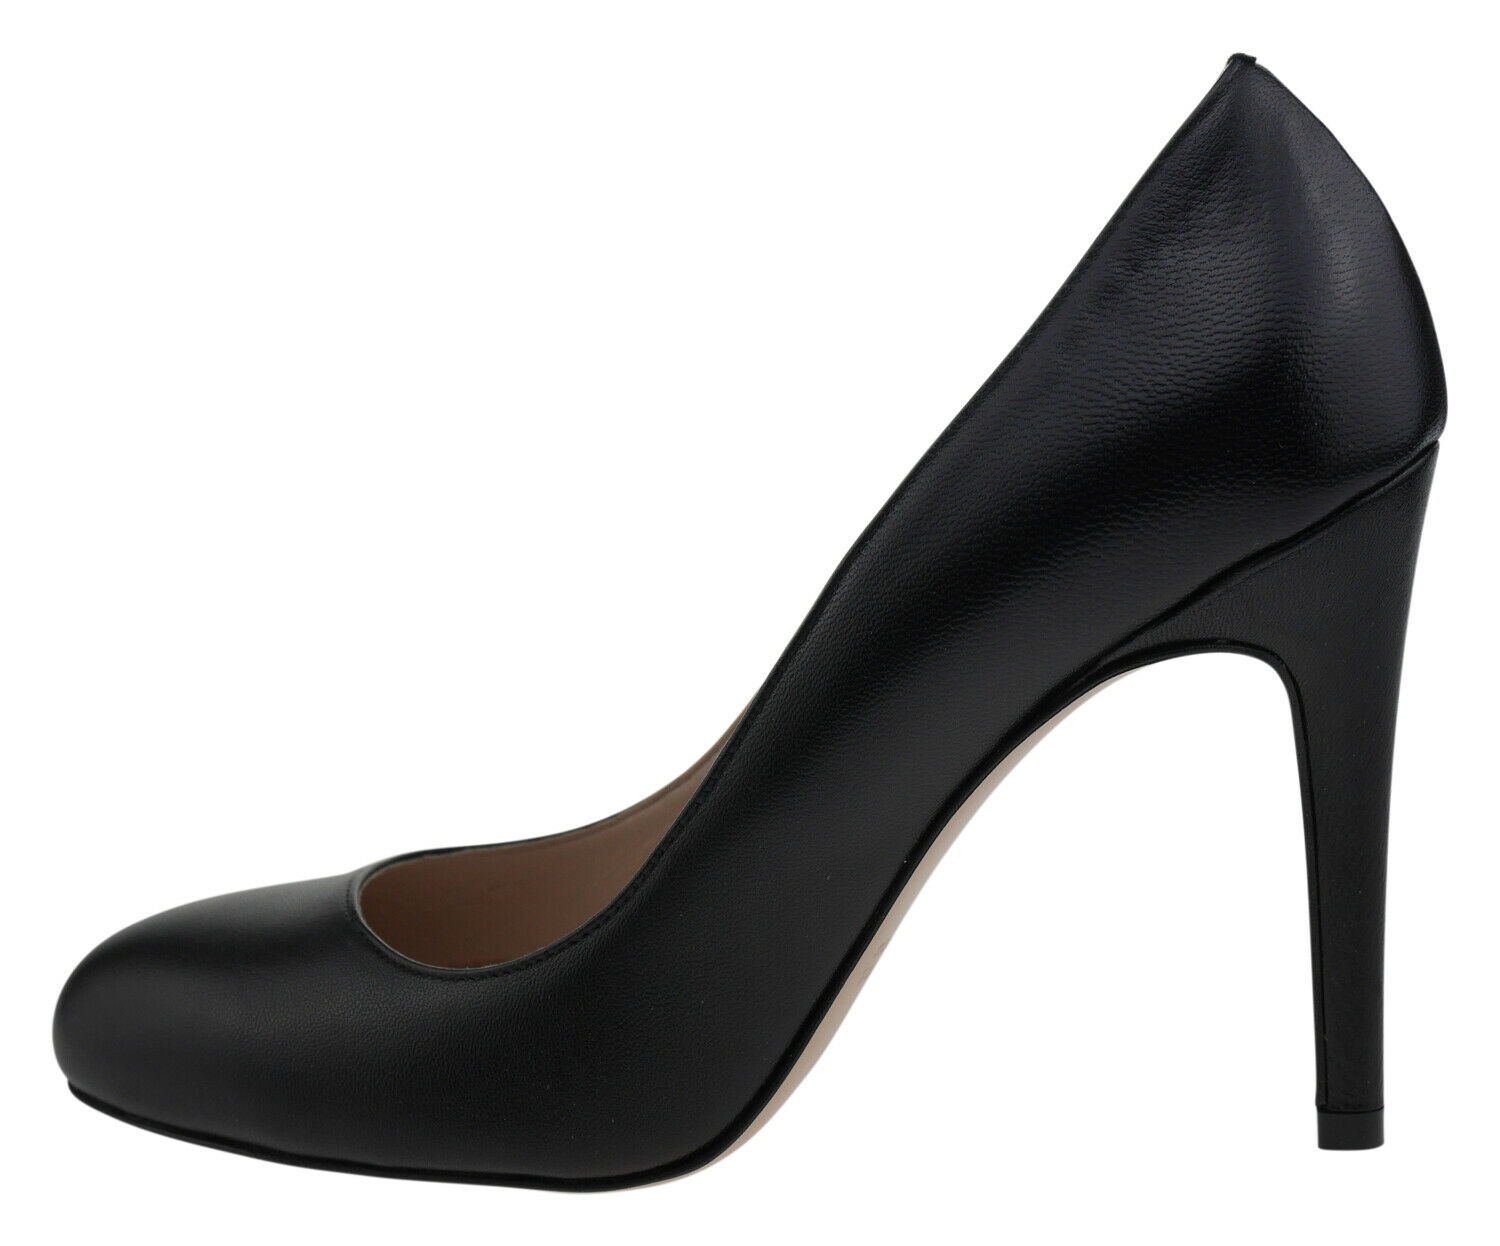 Vanita Belen dcf292x58 Leather Pump nero  18666692  economico